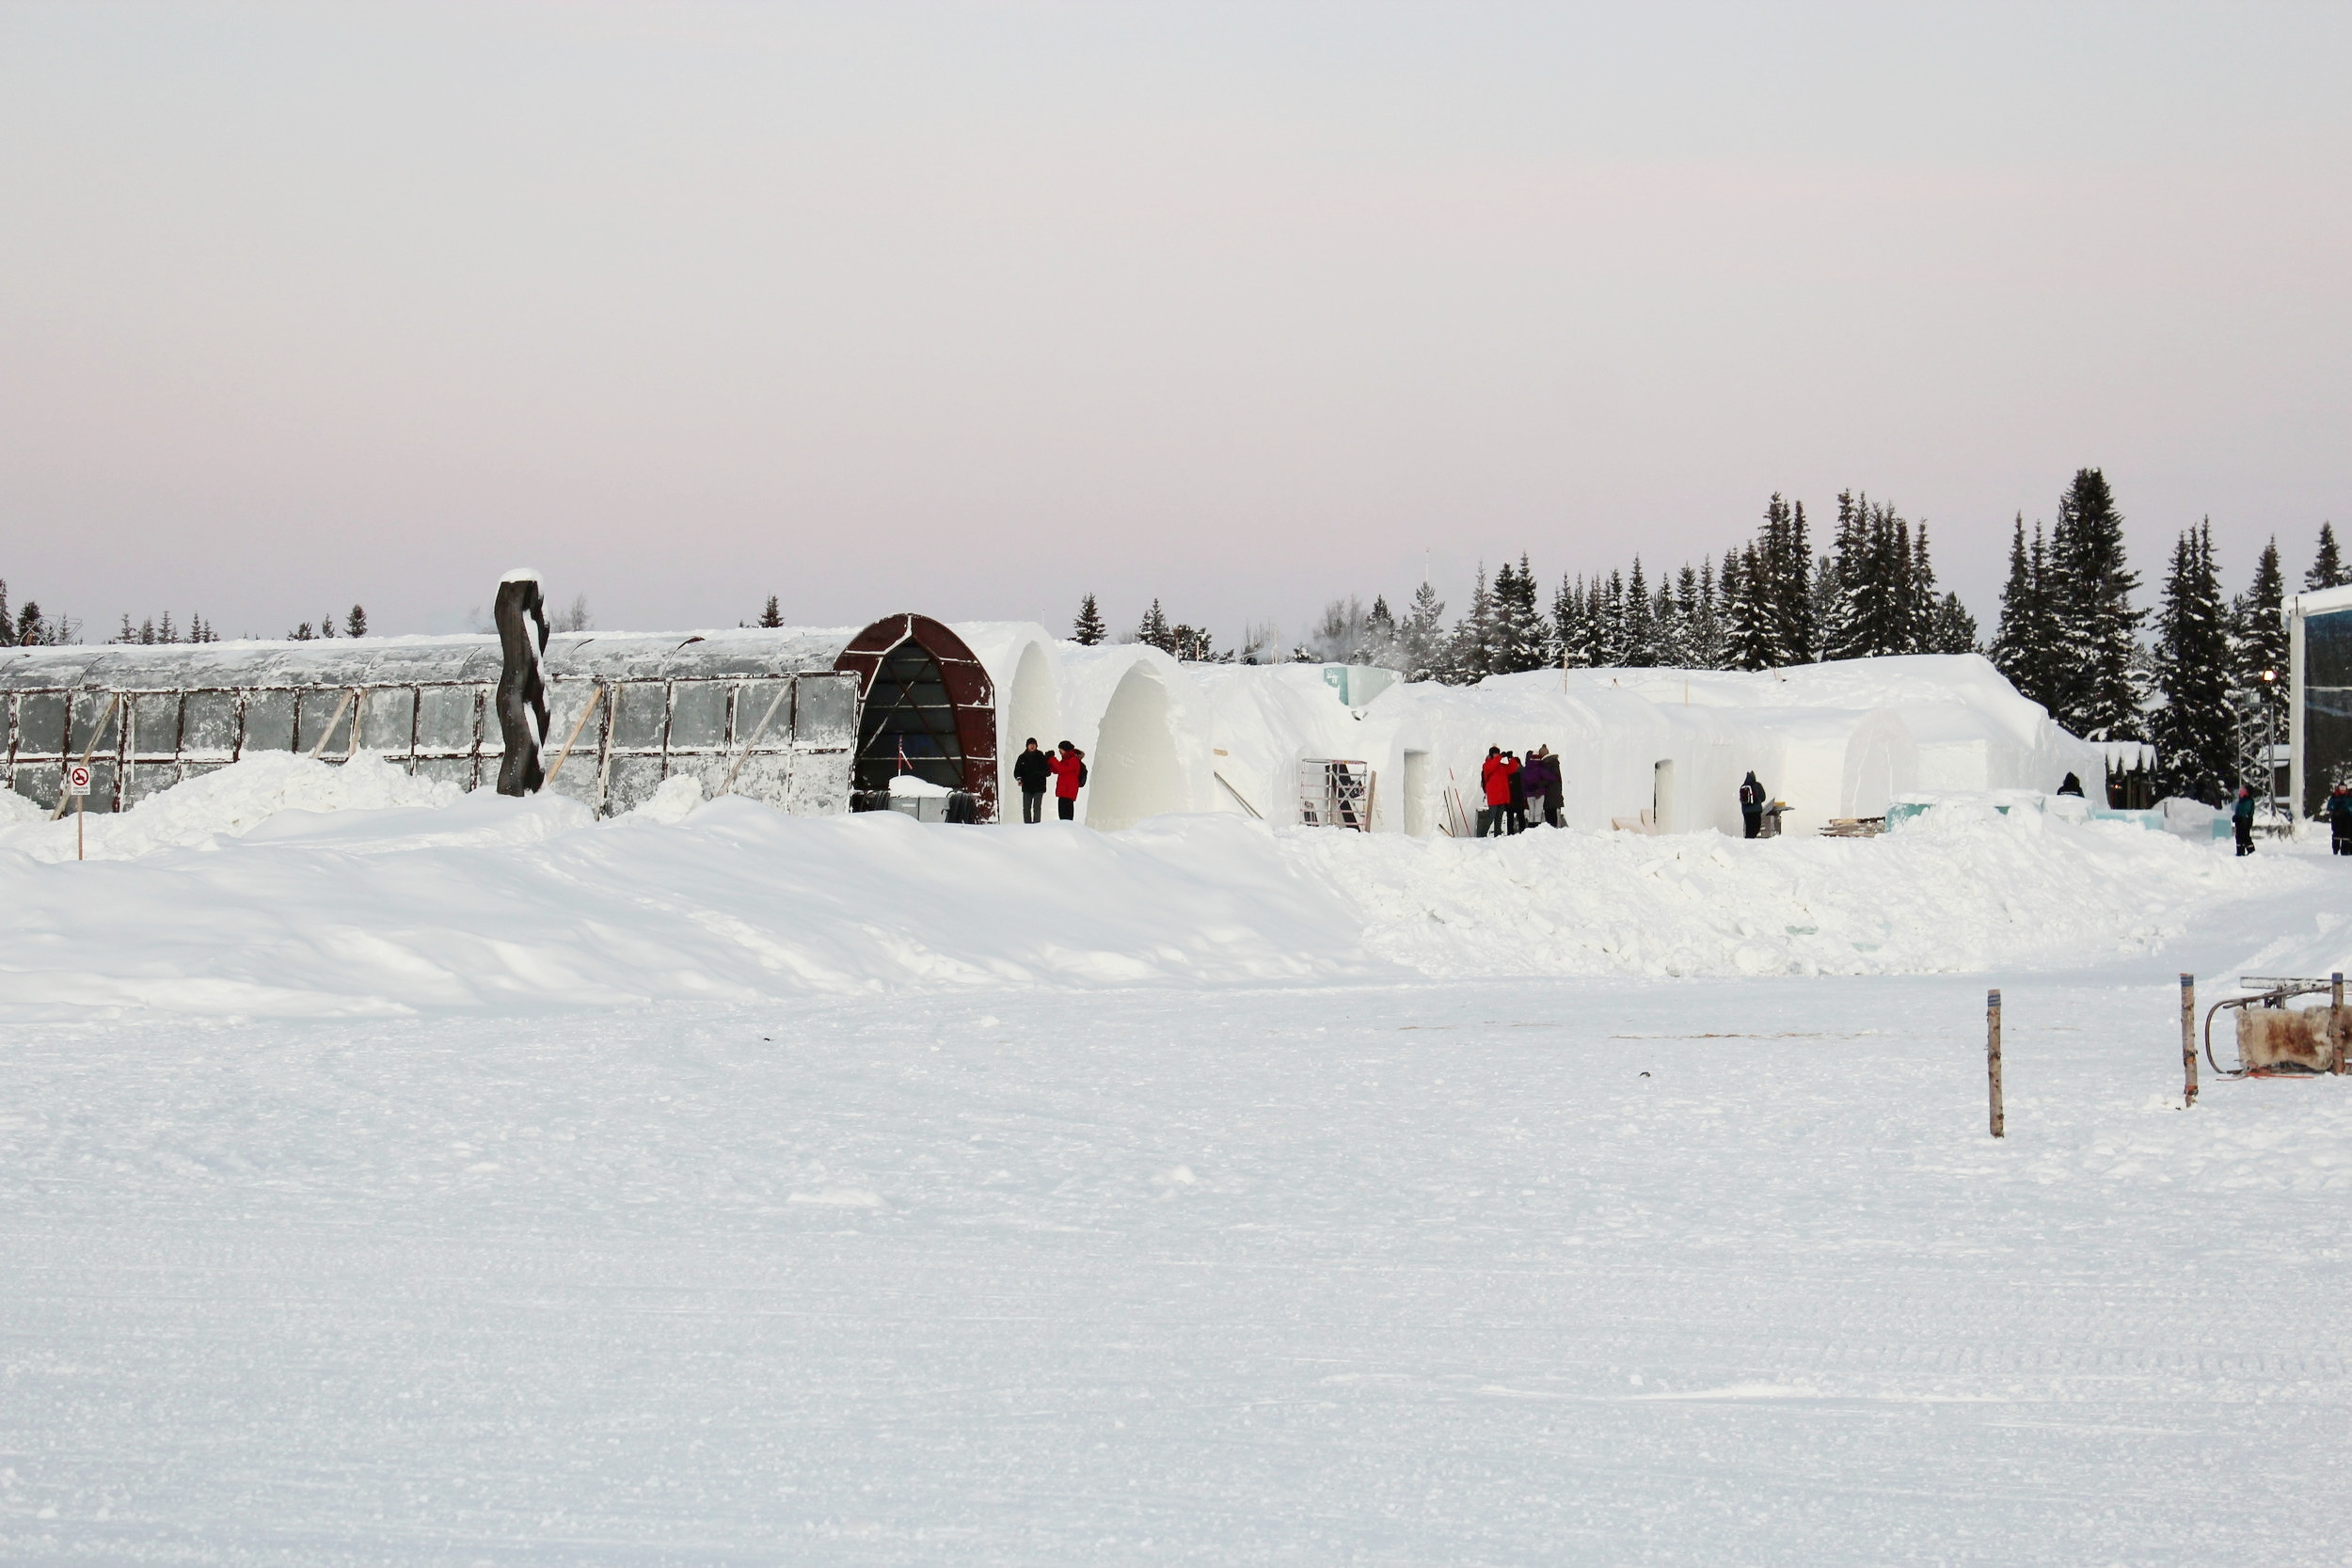 Outside the Icehotel in Sweden - Photo by: The Romanticist Studios